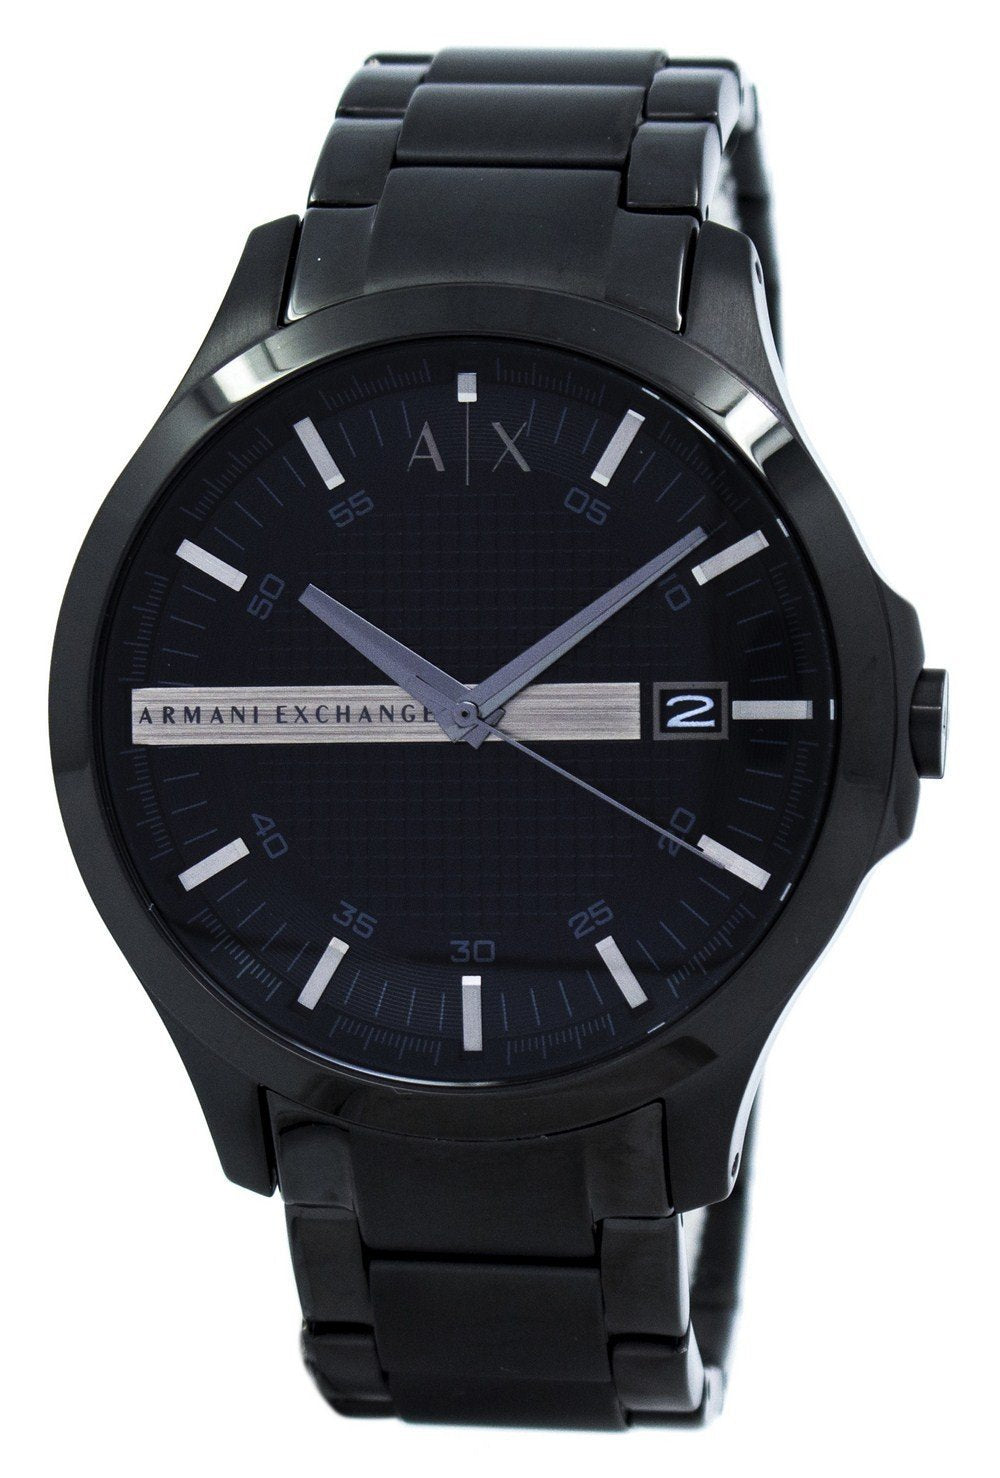 Armani Exchange Black Dial Stainless Steel AX2104 Men's Watch